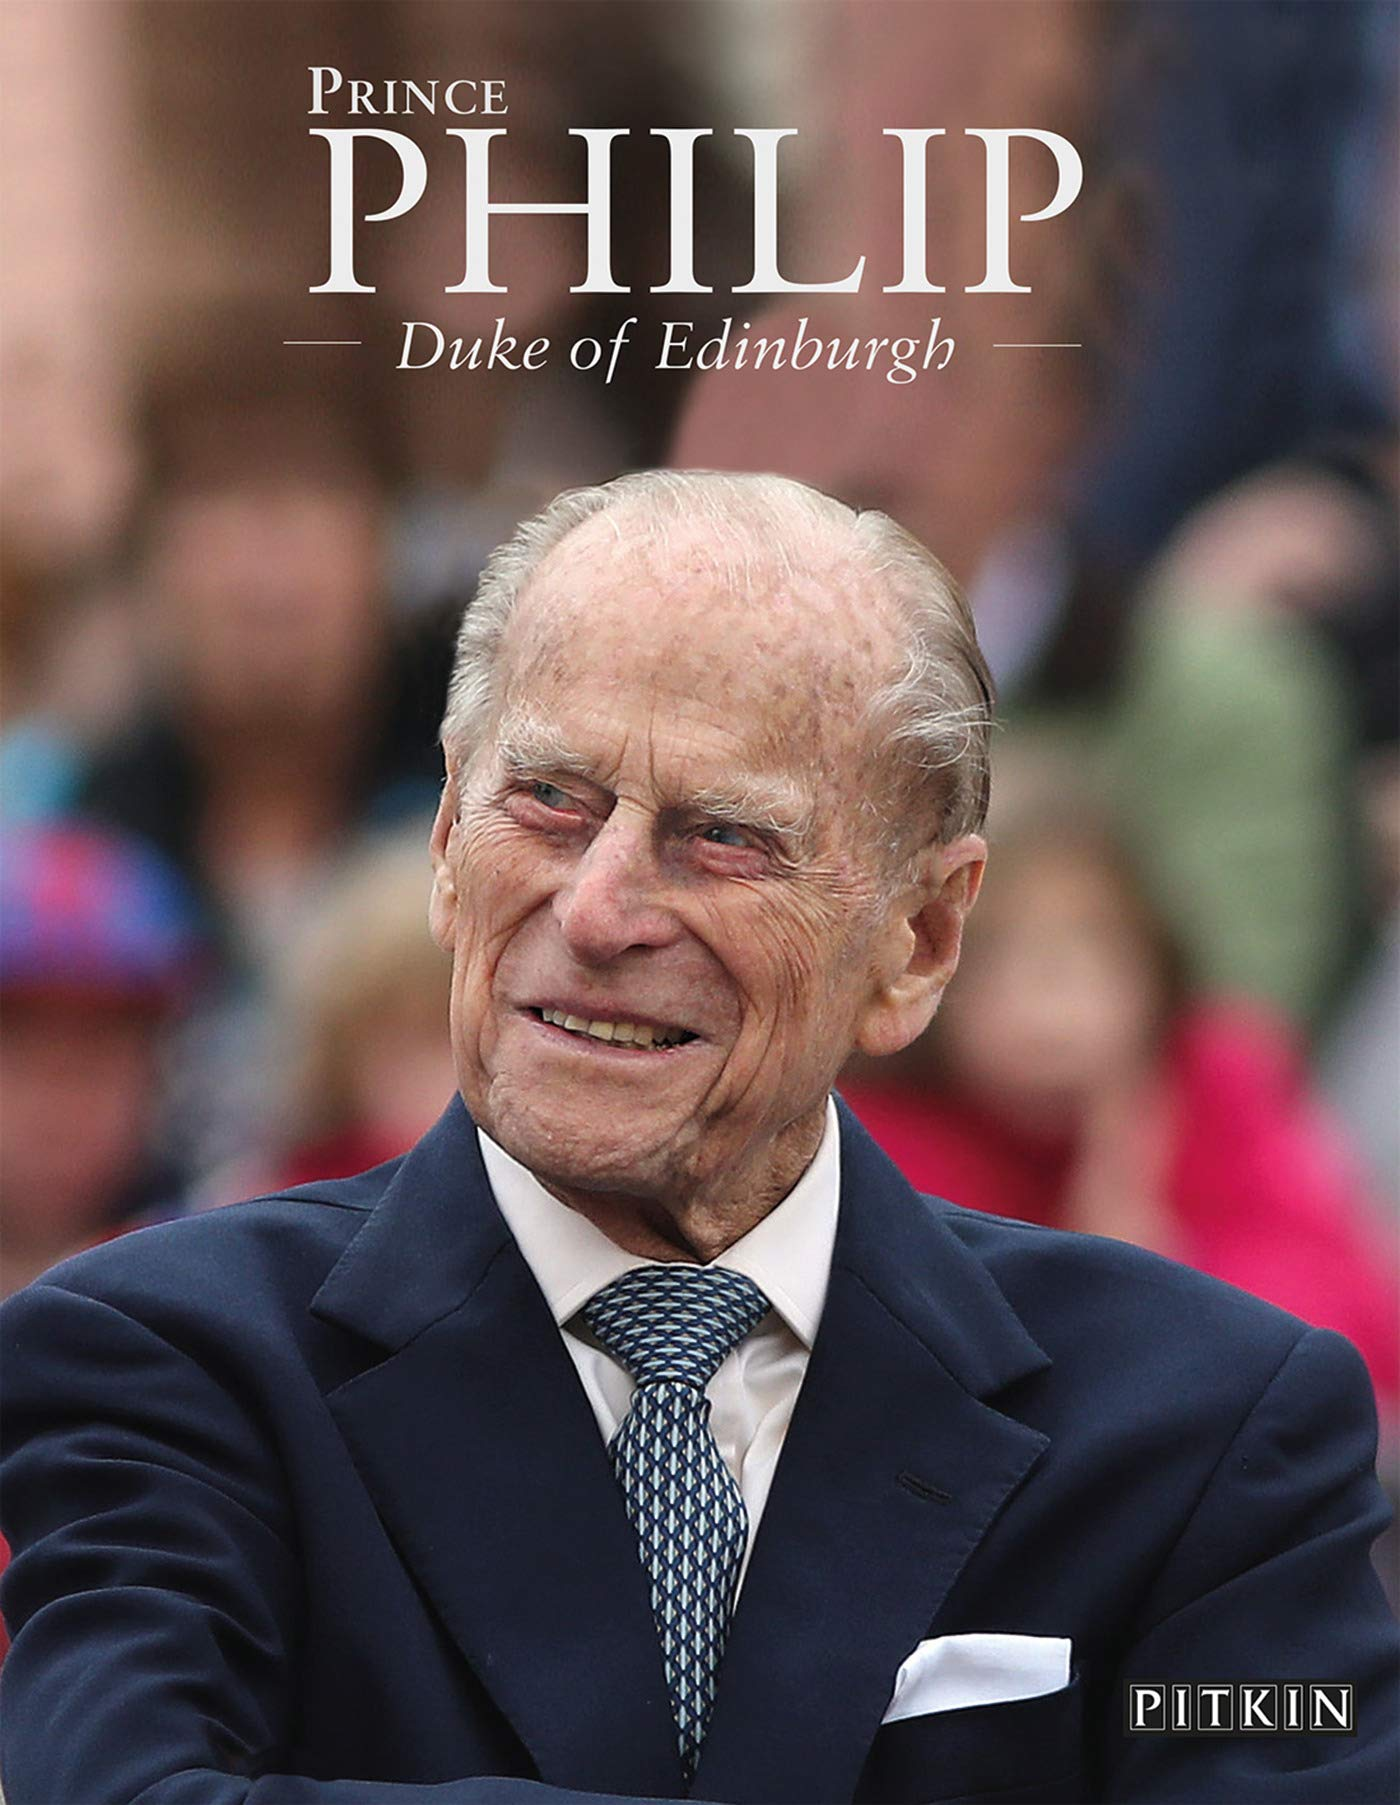 Prince Philip Duke Of Edinburgh Pitkin Royal Collection Bullen Annie 9781841657837 Amazon Com Books